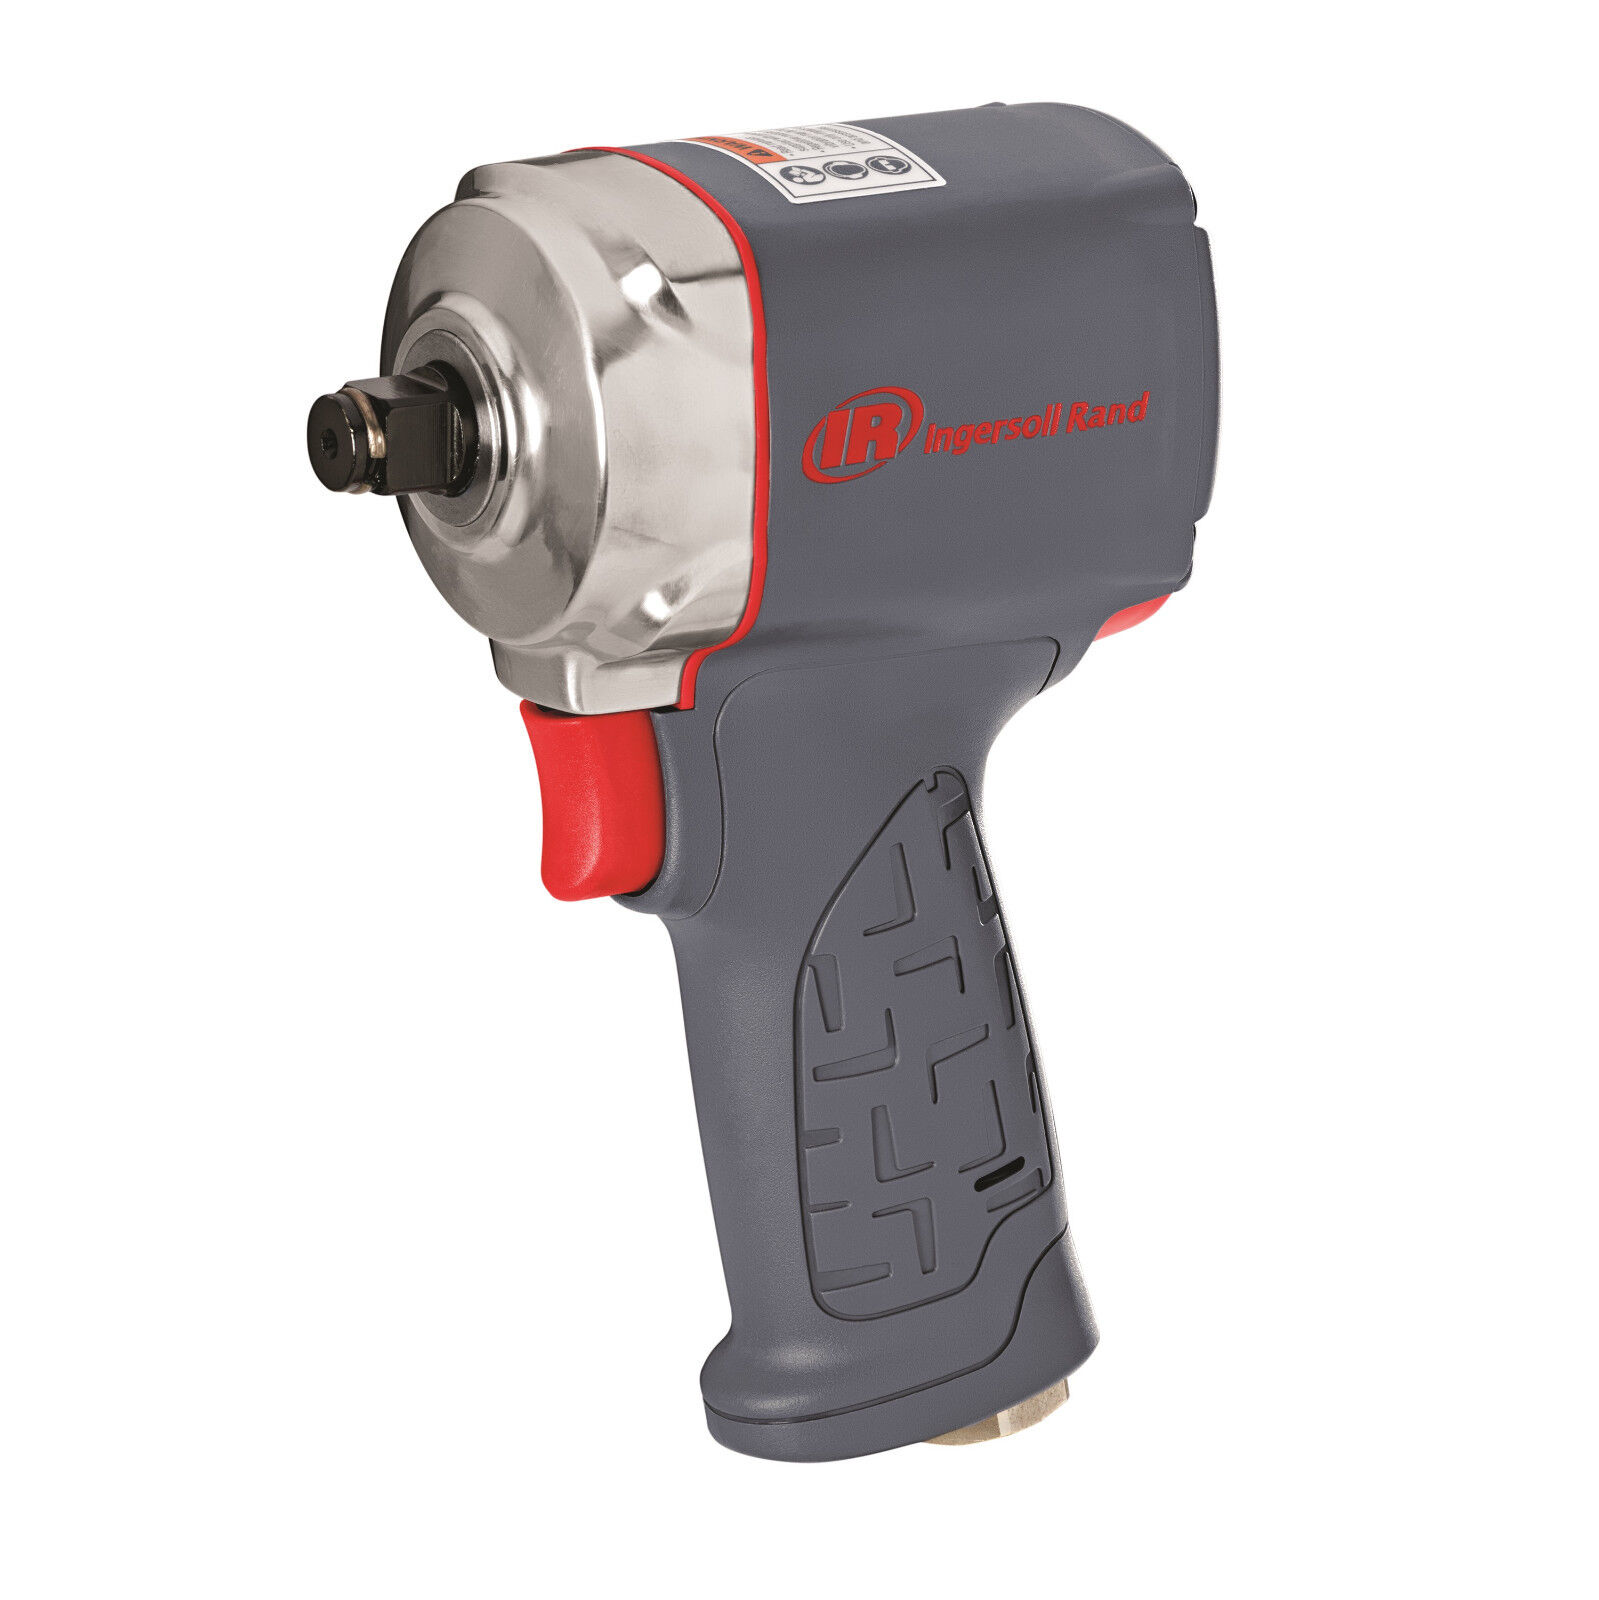 Ingersoll-Rand 35MAX IR35MAX 1 2  Ultra Compact Impact Wrench